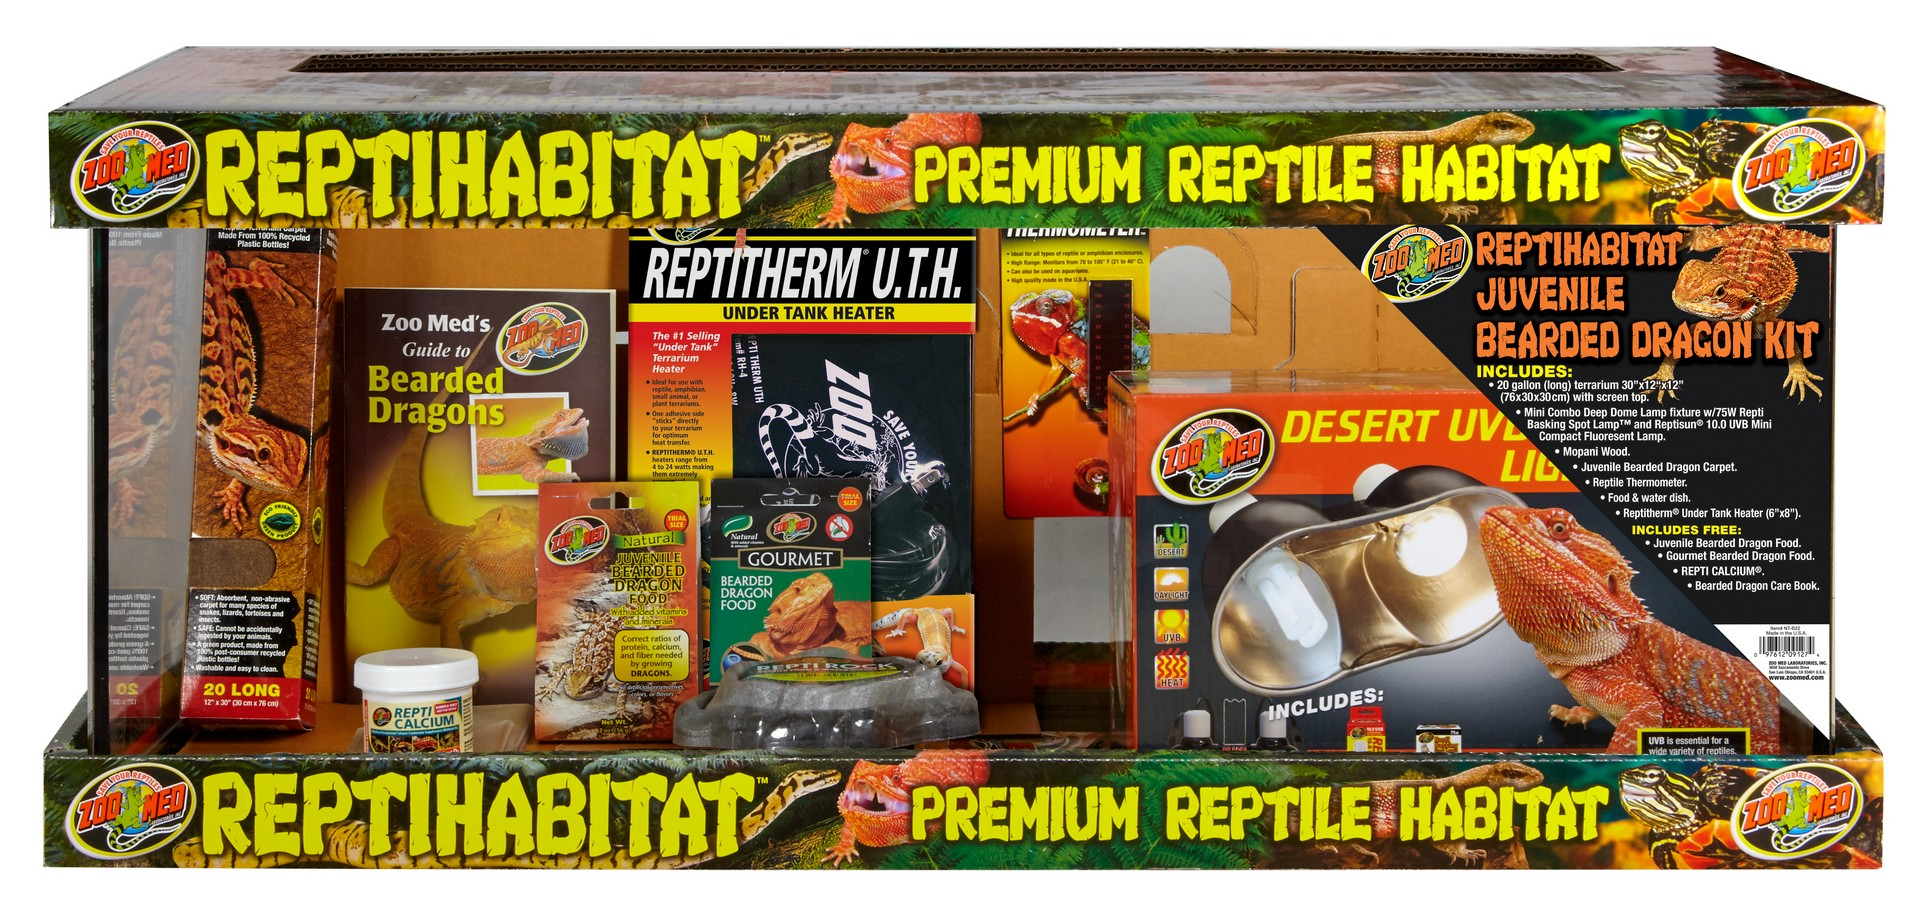 Reptihabitat Juvenile Bearded Dragon Kit Zoo Med